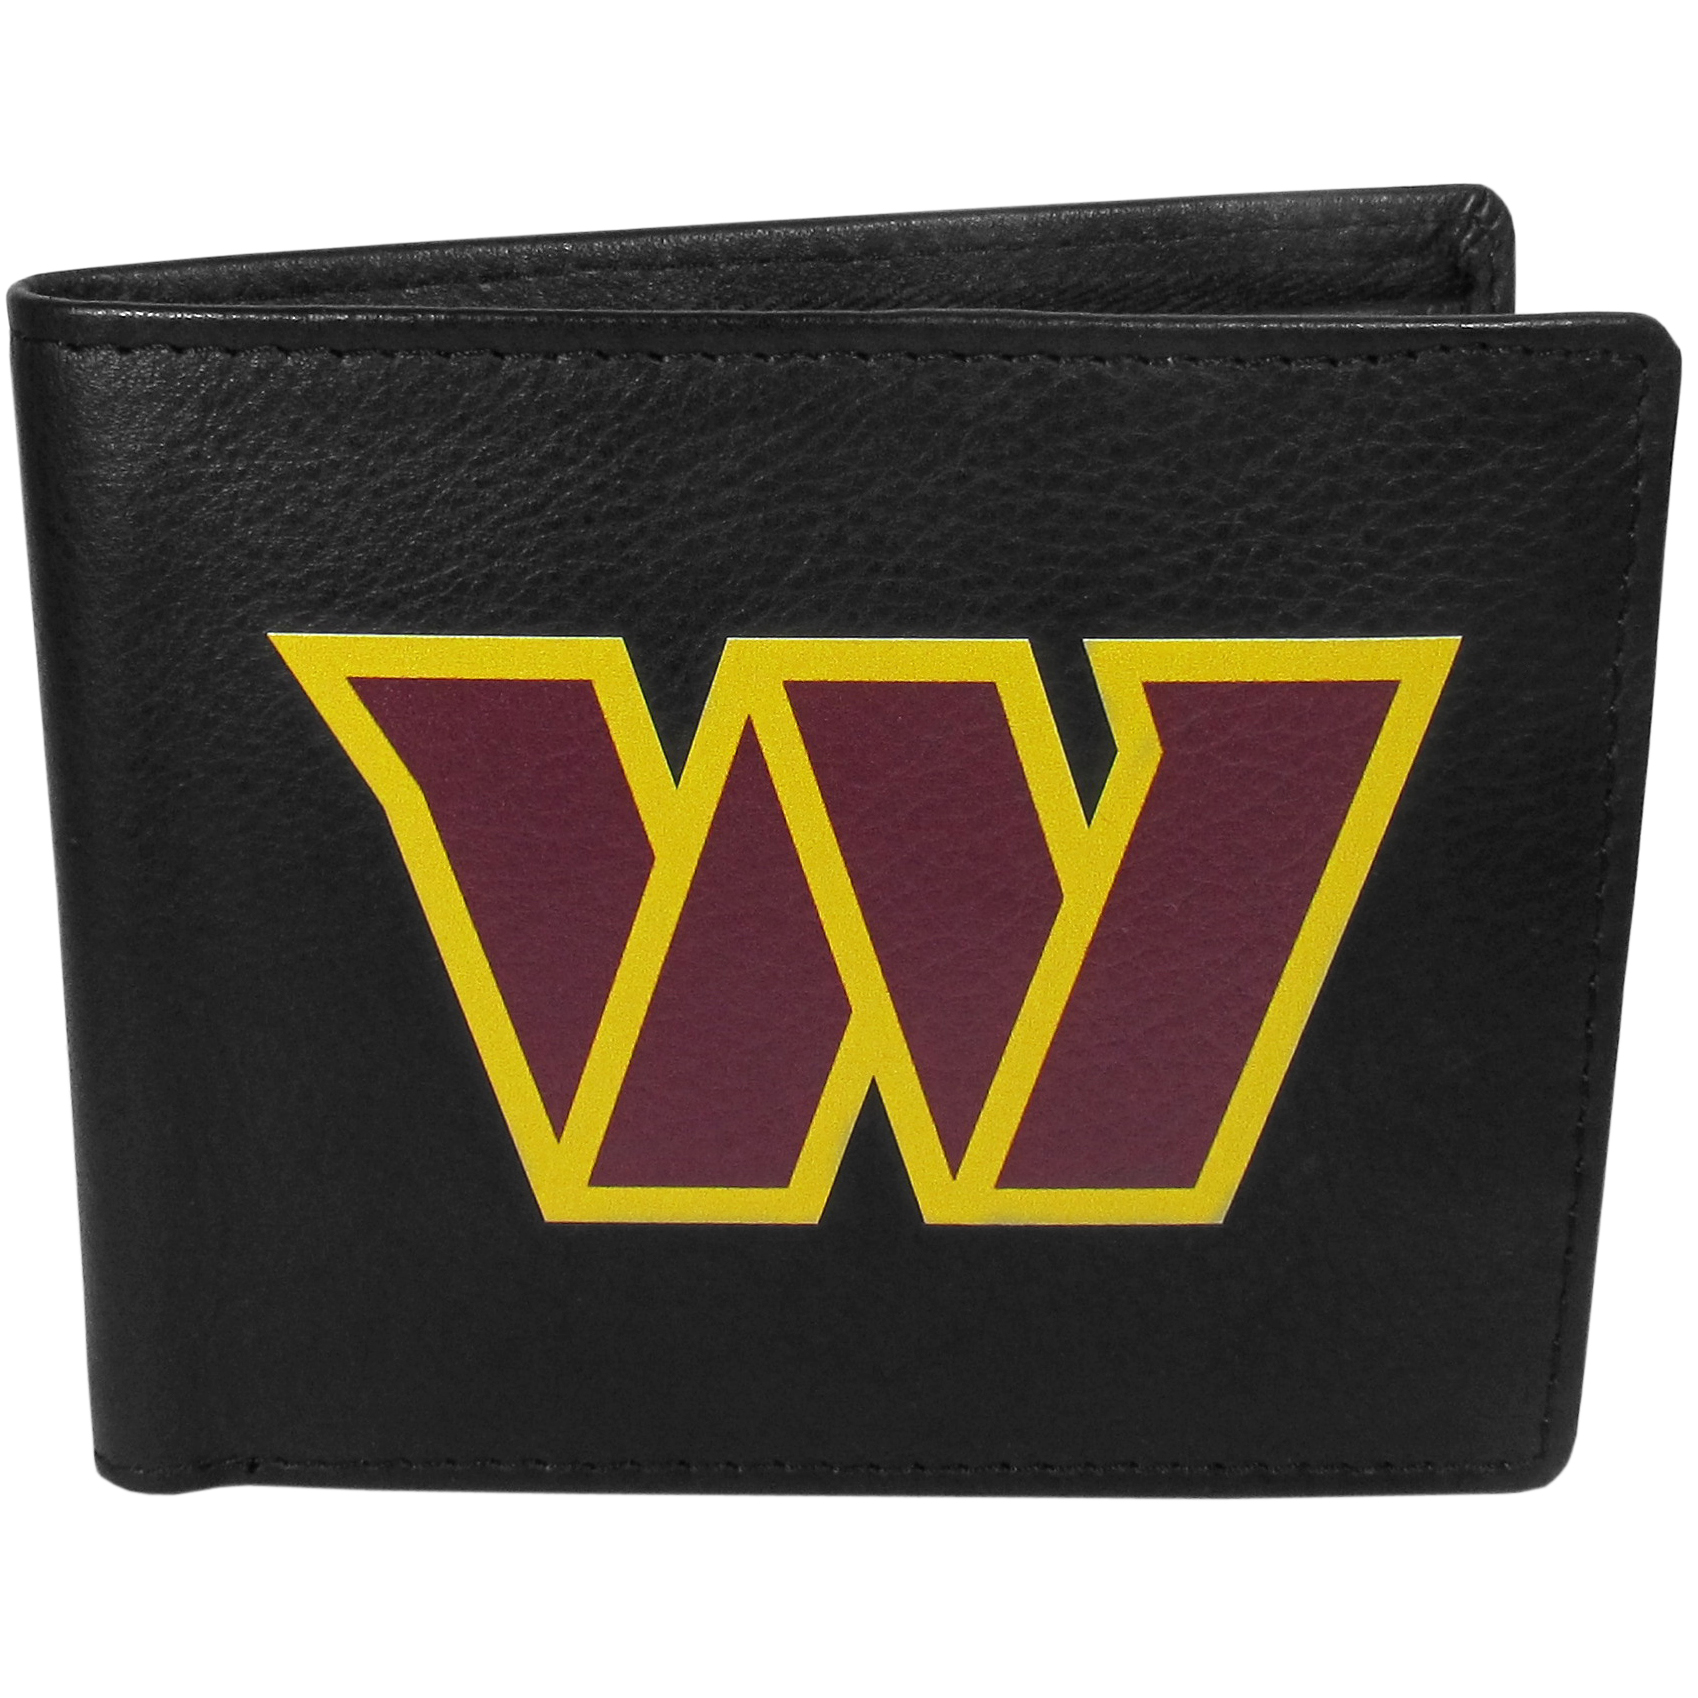 Washington Redskins Bi-fold Wallet Large Logo - Sports fans do not have to sacrifice style with this classic bi-fold wallet that sports the Washington Redskins extra large logo. This men's fashion accessory has a leather grain look and expert craftmanship for a quality wallet at a great price. The wallet features inner credit card slots, windowed ID slot and a large billfold pocket. The front of the wallet features a printed team logo.